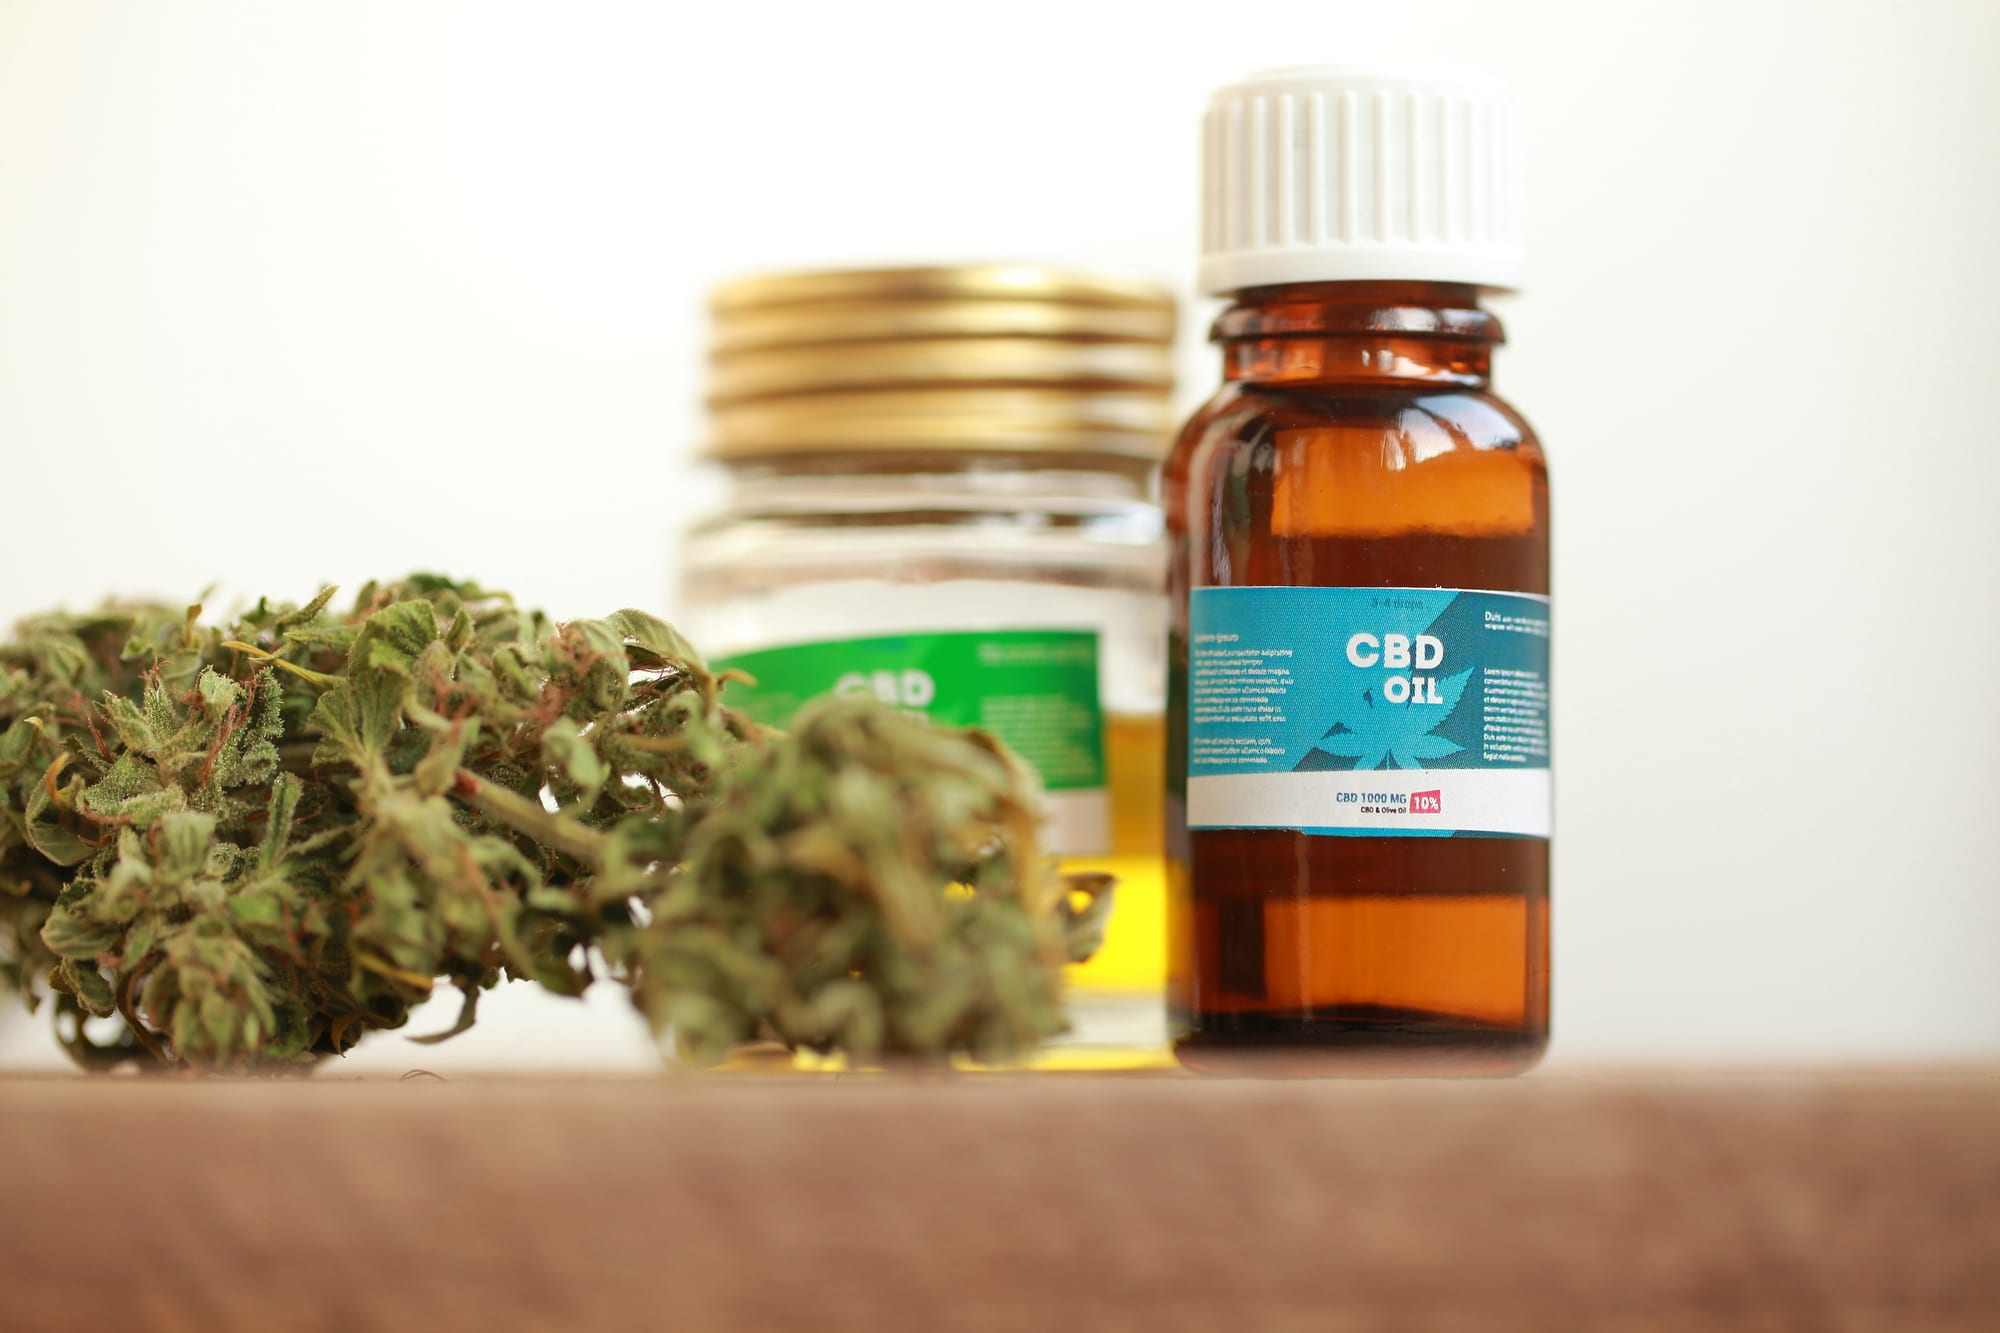 Little Buds to Watch OTC Stock Review Features 4 CBD Stock Picks